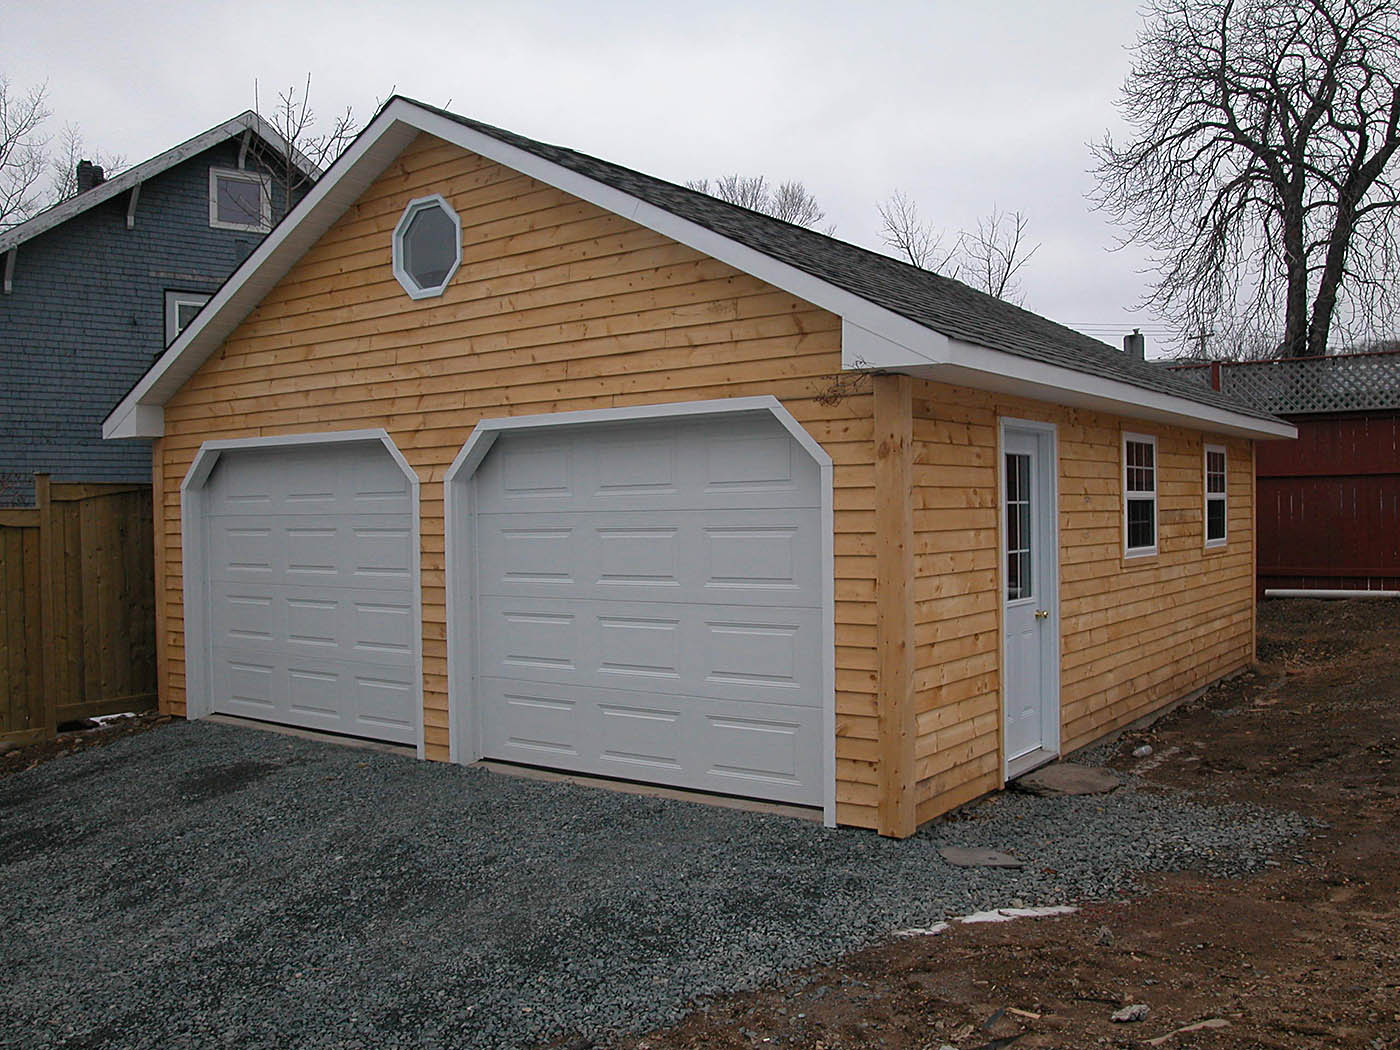 clopaydoors door images provides steel insulated high benefits an garage the wood of carriage house coachman best collection end with on doors look design clopay graves